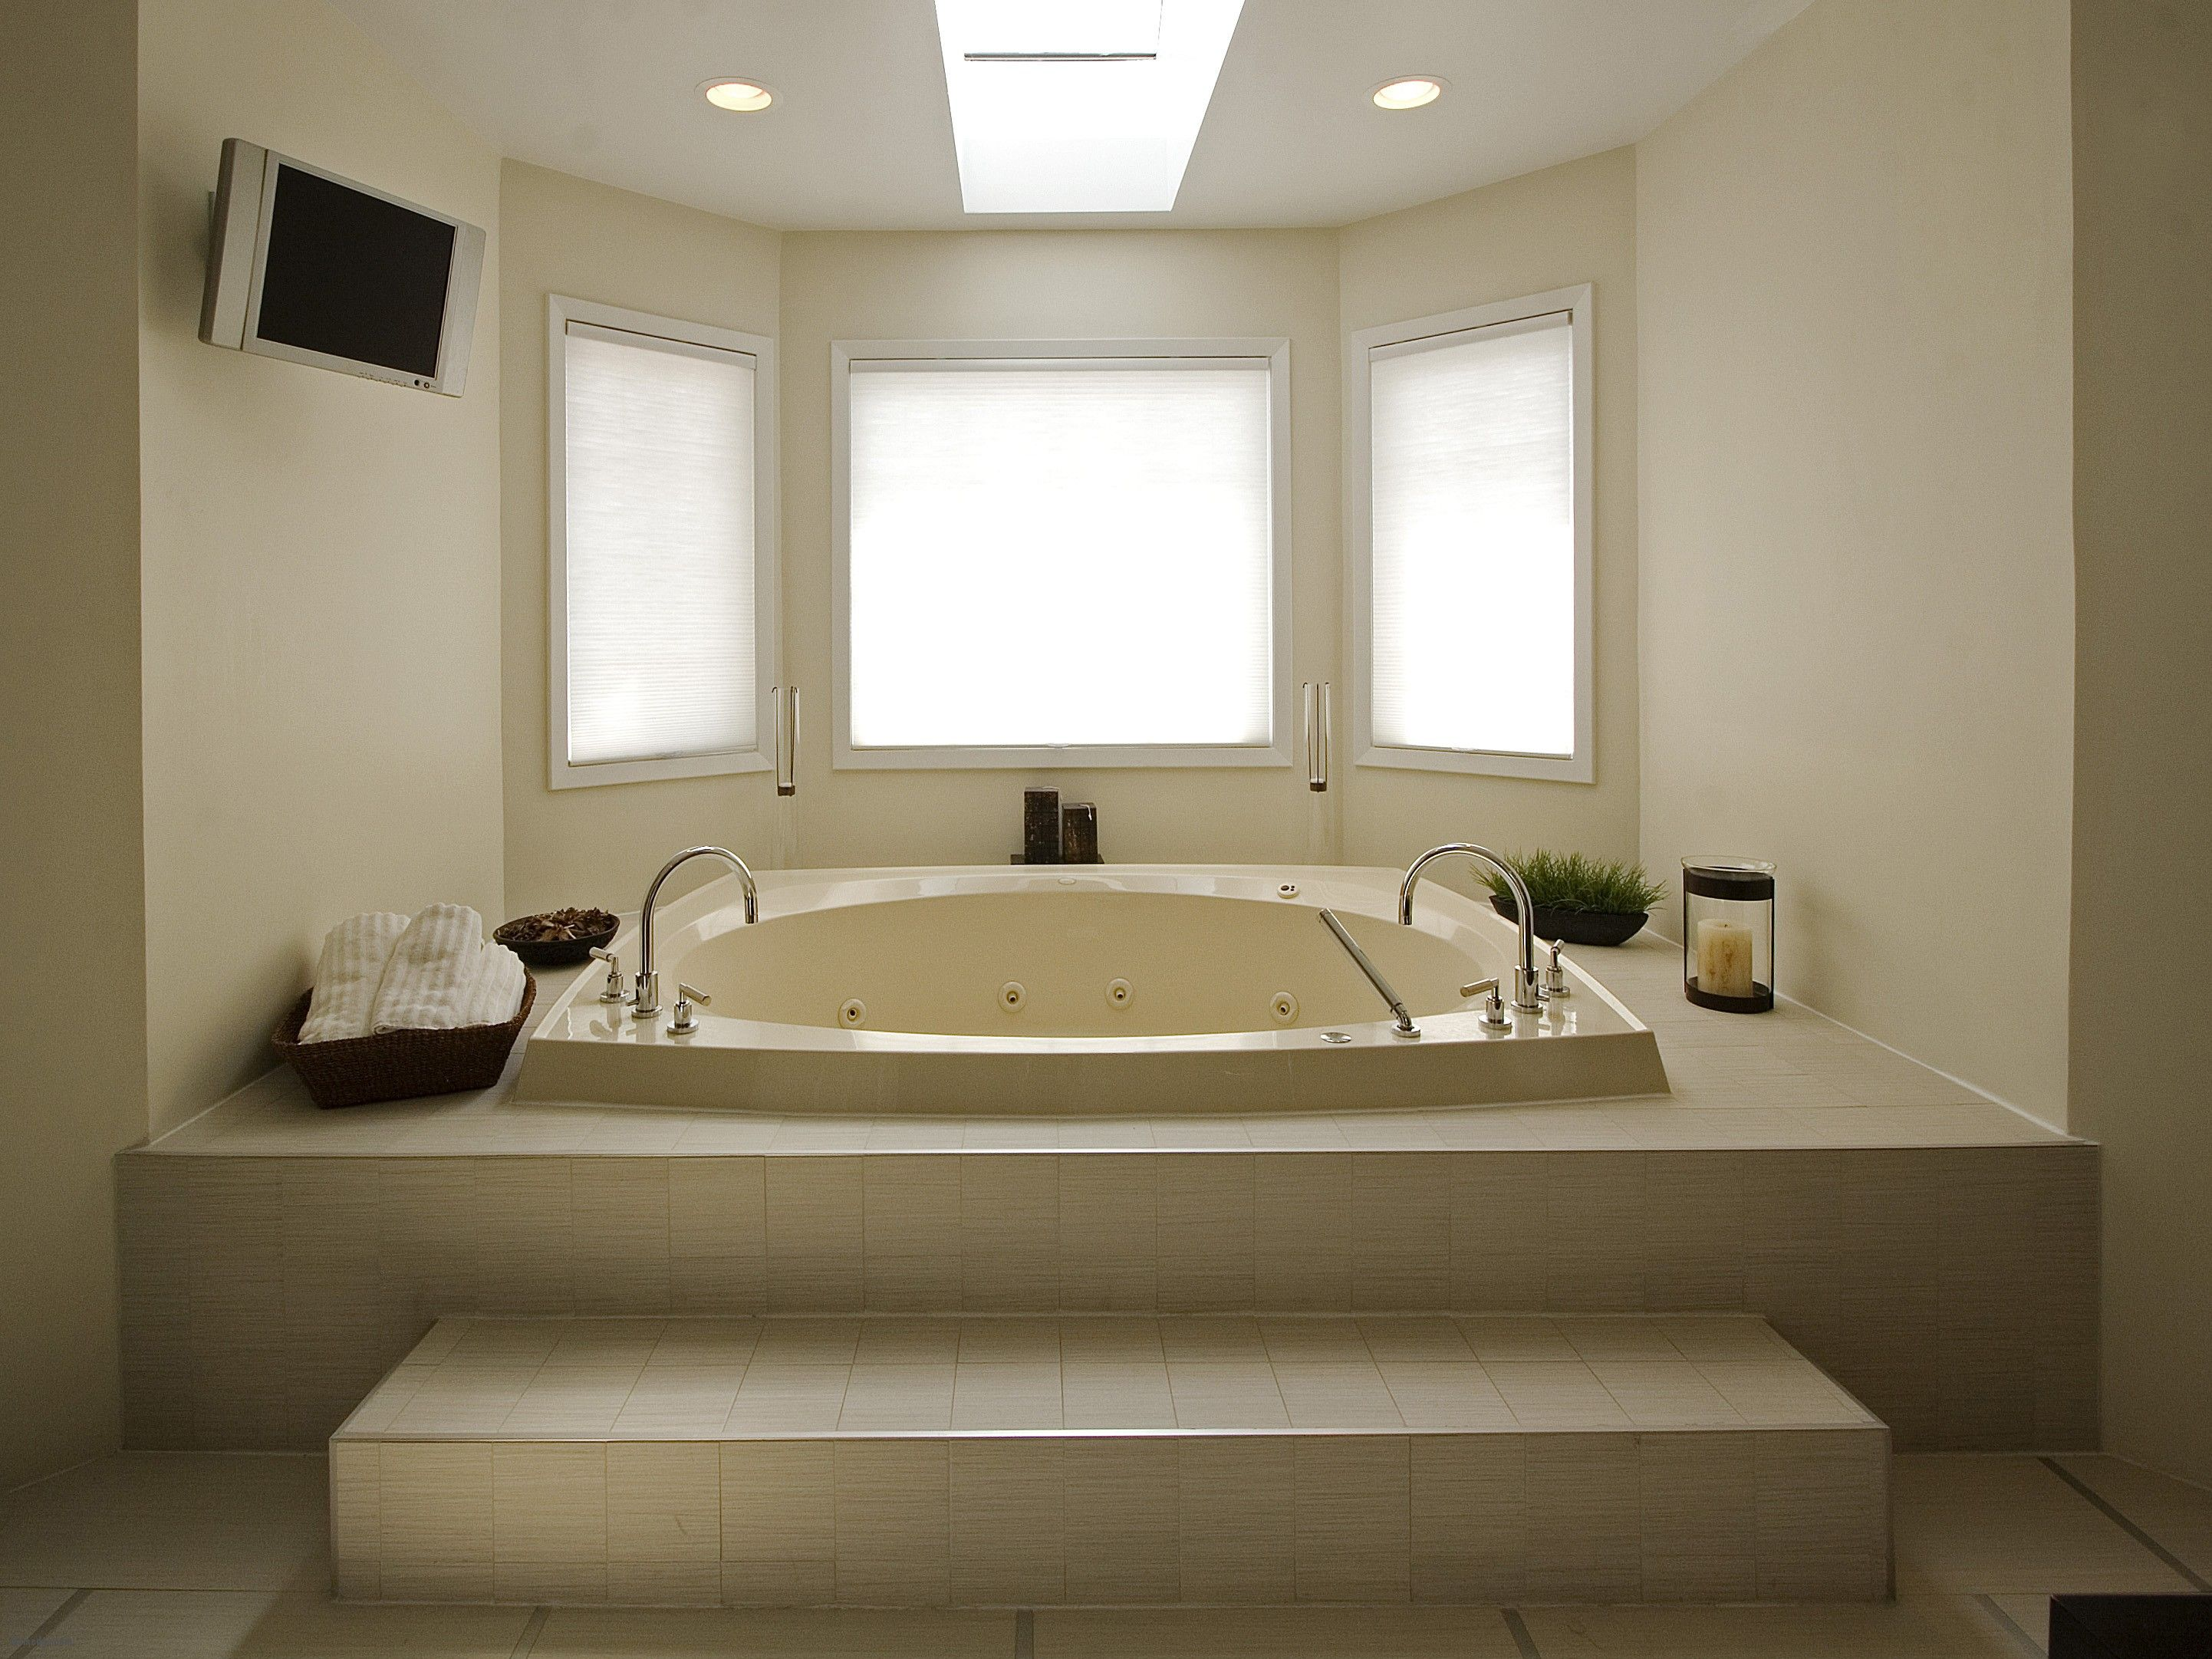 cool Best Of Large Bathtubs , Bathtubs Choosing bathroom fixtures ...